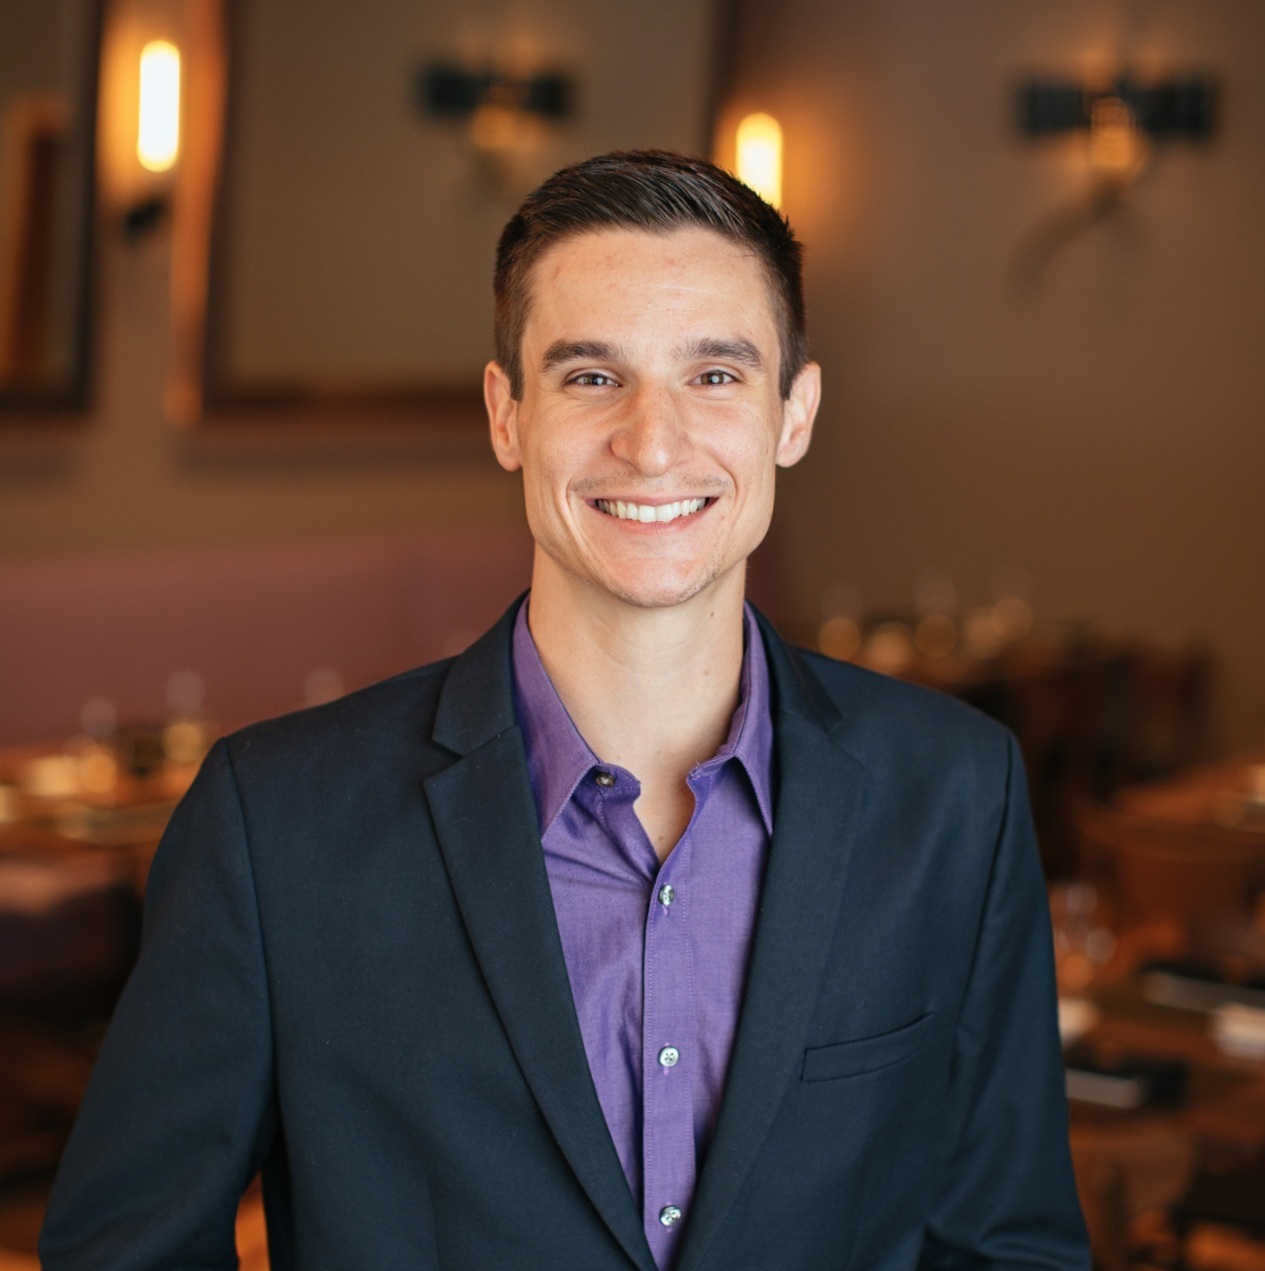 ZACH GIRGENTI   Brand Manager   Leading the Sukoshi team beginning with its Charlotte opening in late 2018, when Sukoshi announced it was packing its bags to open a second location in Atlanta, Zach did too. The team's first venture into the fine-casual realm, Zach combines his outgoing personality with his leadership mentality to perfectly match the brand. He manages the counter-service concept from hiring and team management to day-to-day operations and brand standards.